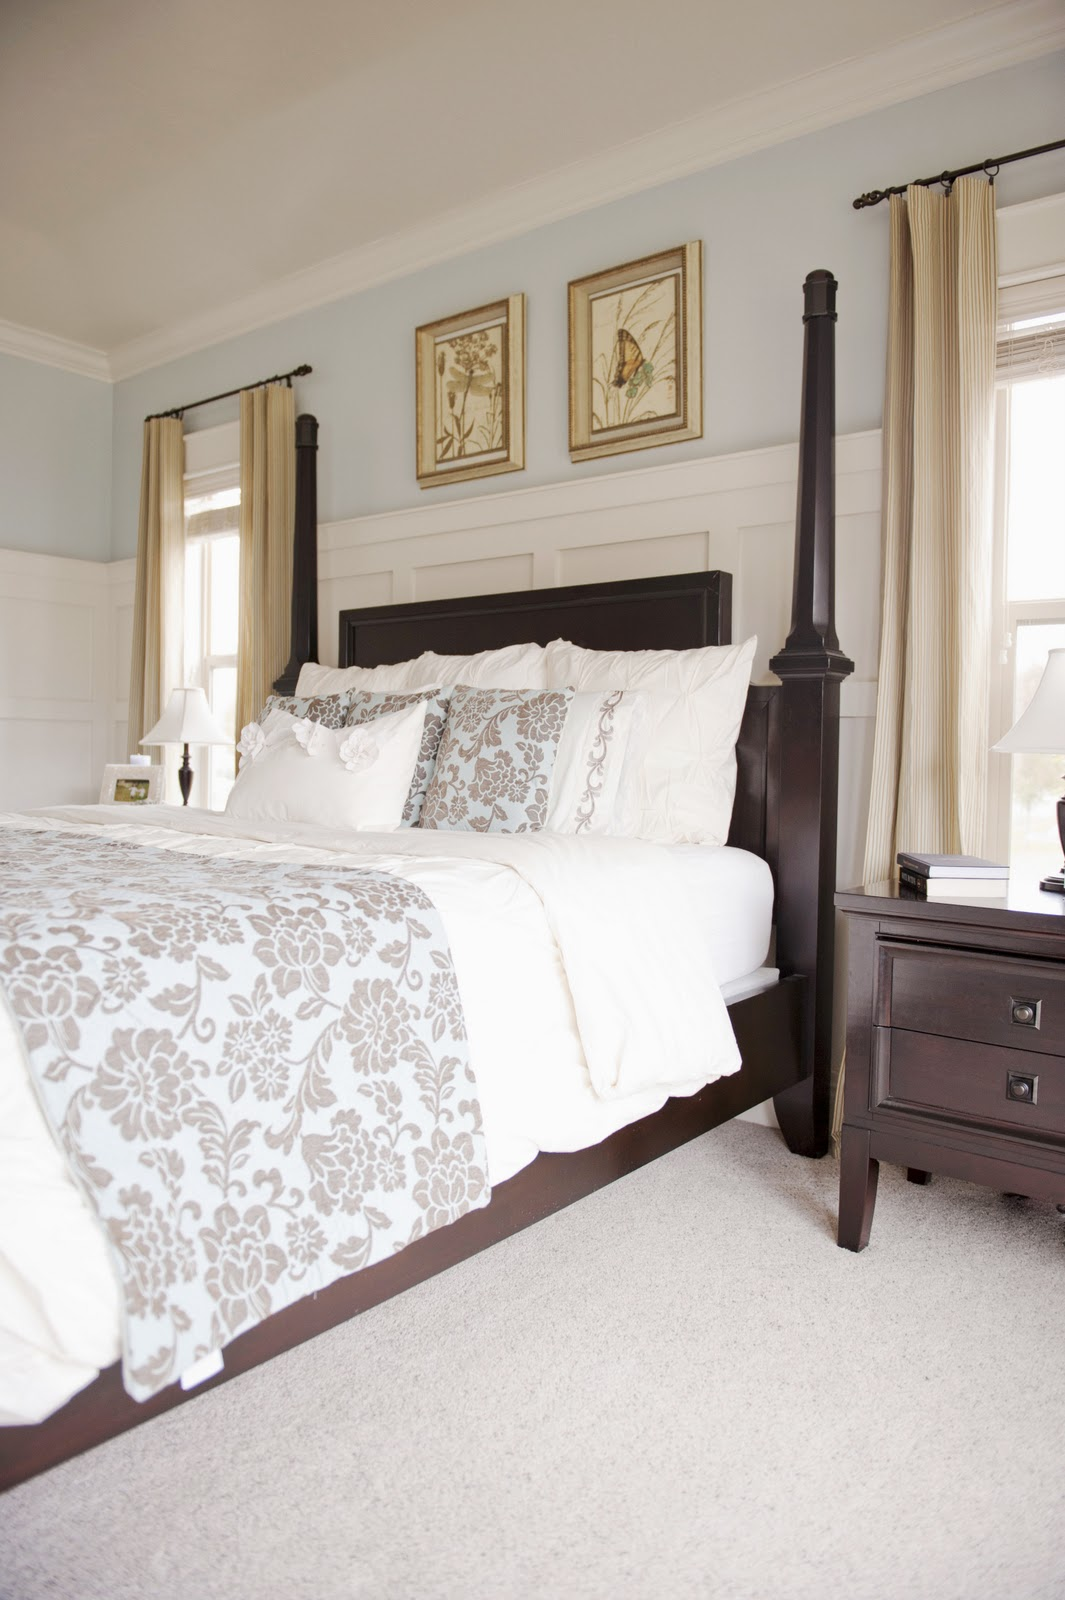 Sita Montgomery Interiors: Sita Montgomery Interiors: My Home Tour: Master Bedroom